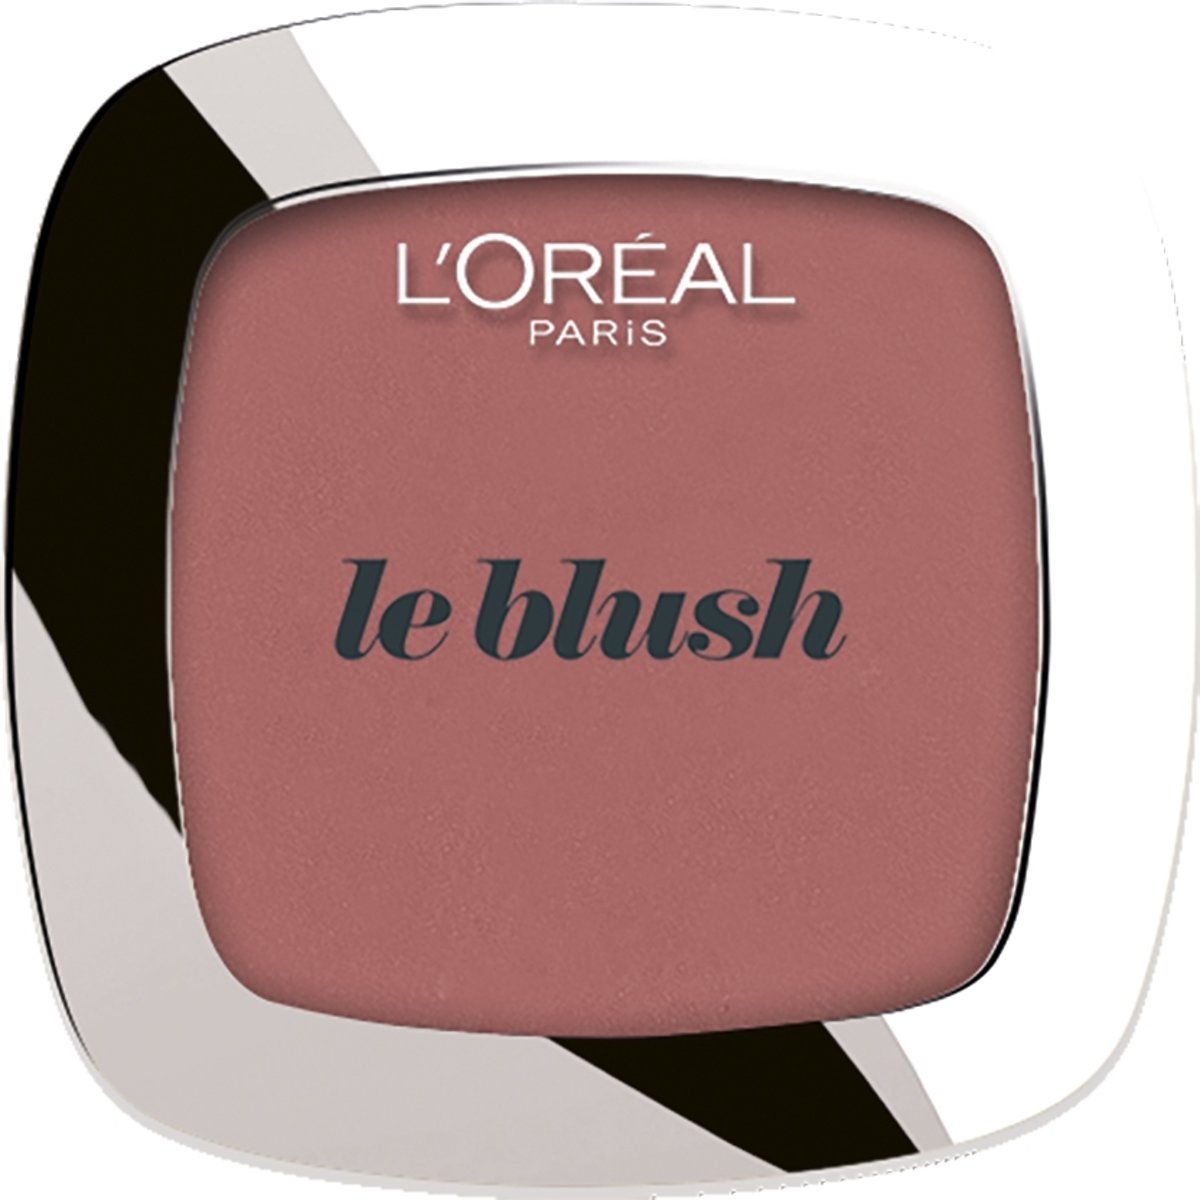 L'Oréal Paris True Match - 150 Rose Sucre DOrge - Blush